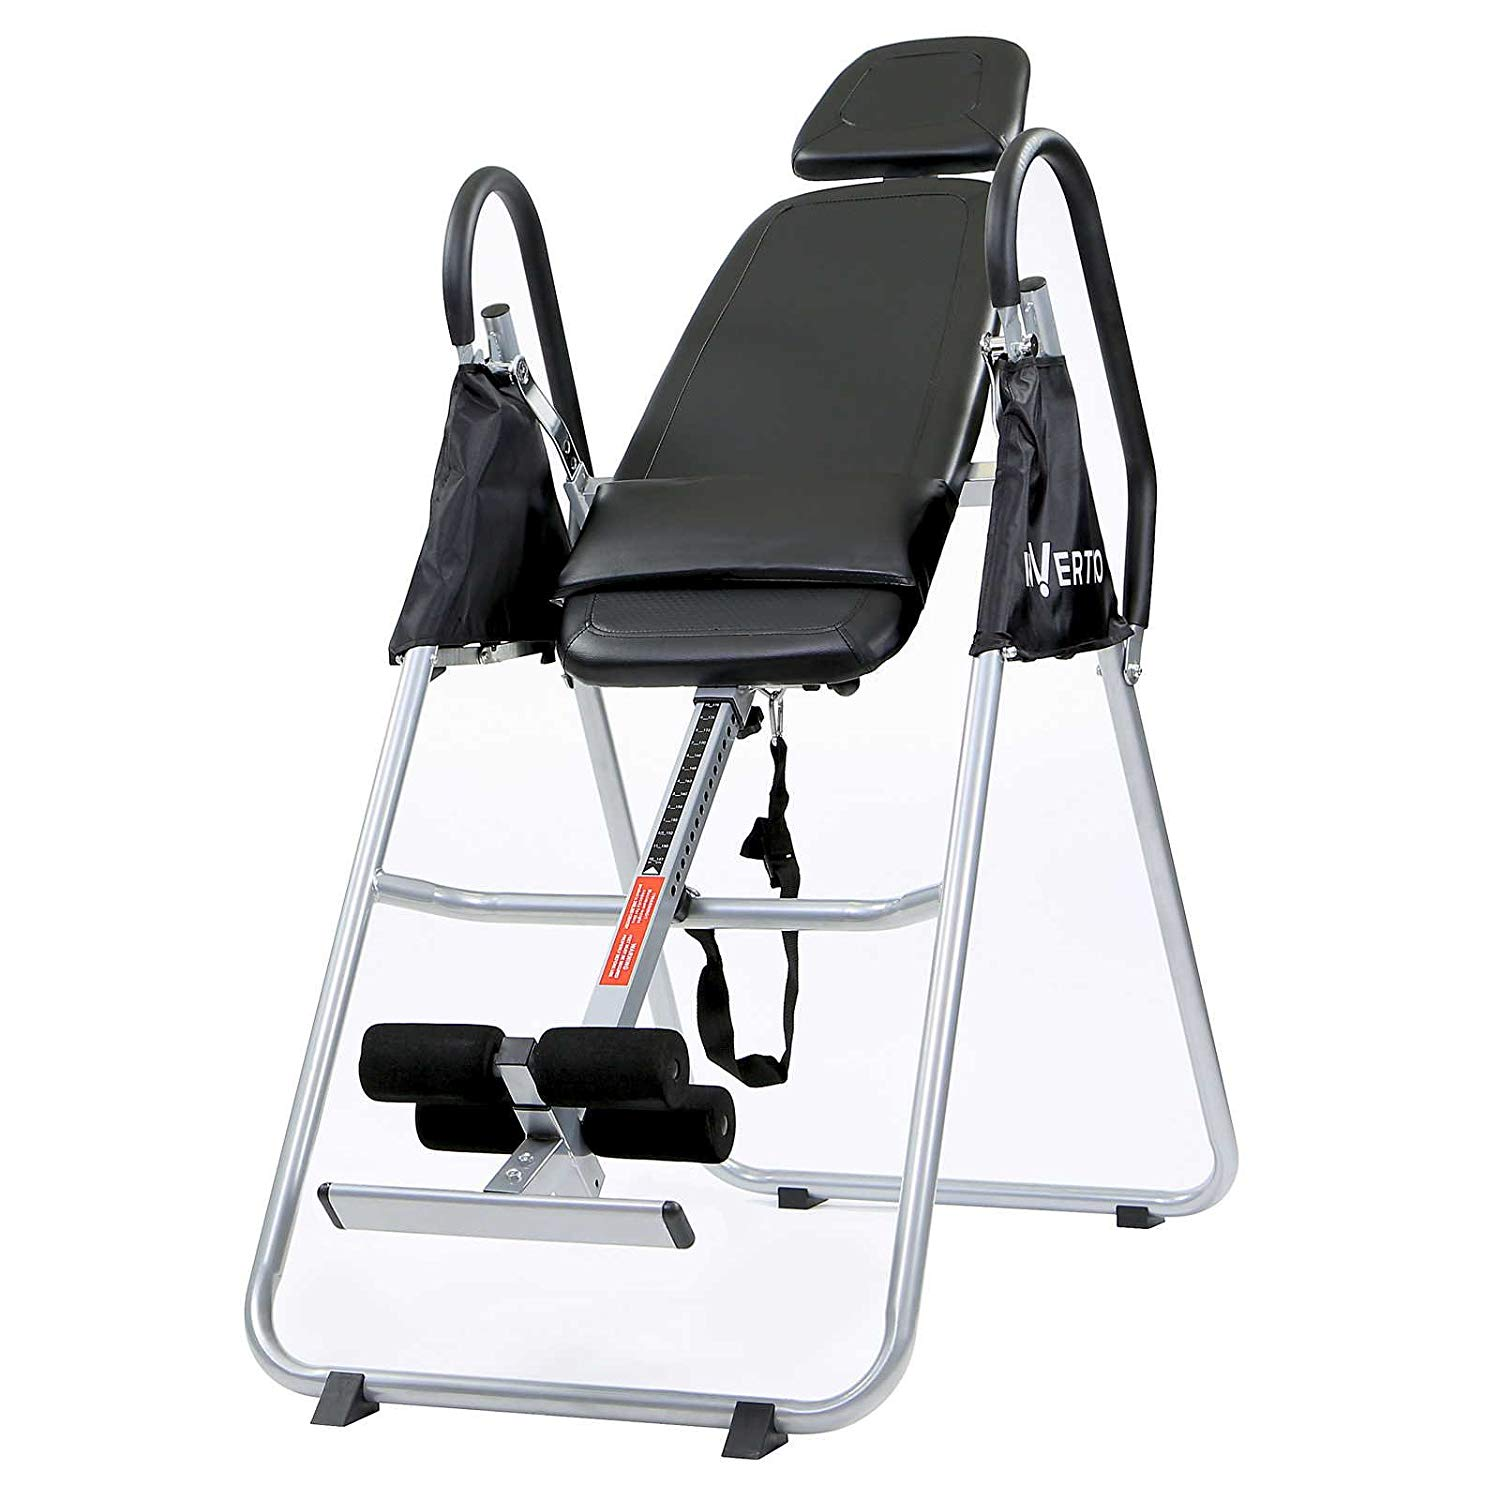 stretching routine best tools post-workout amazon Invertio Inversion Table